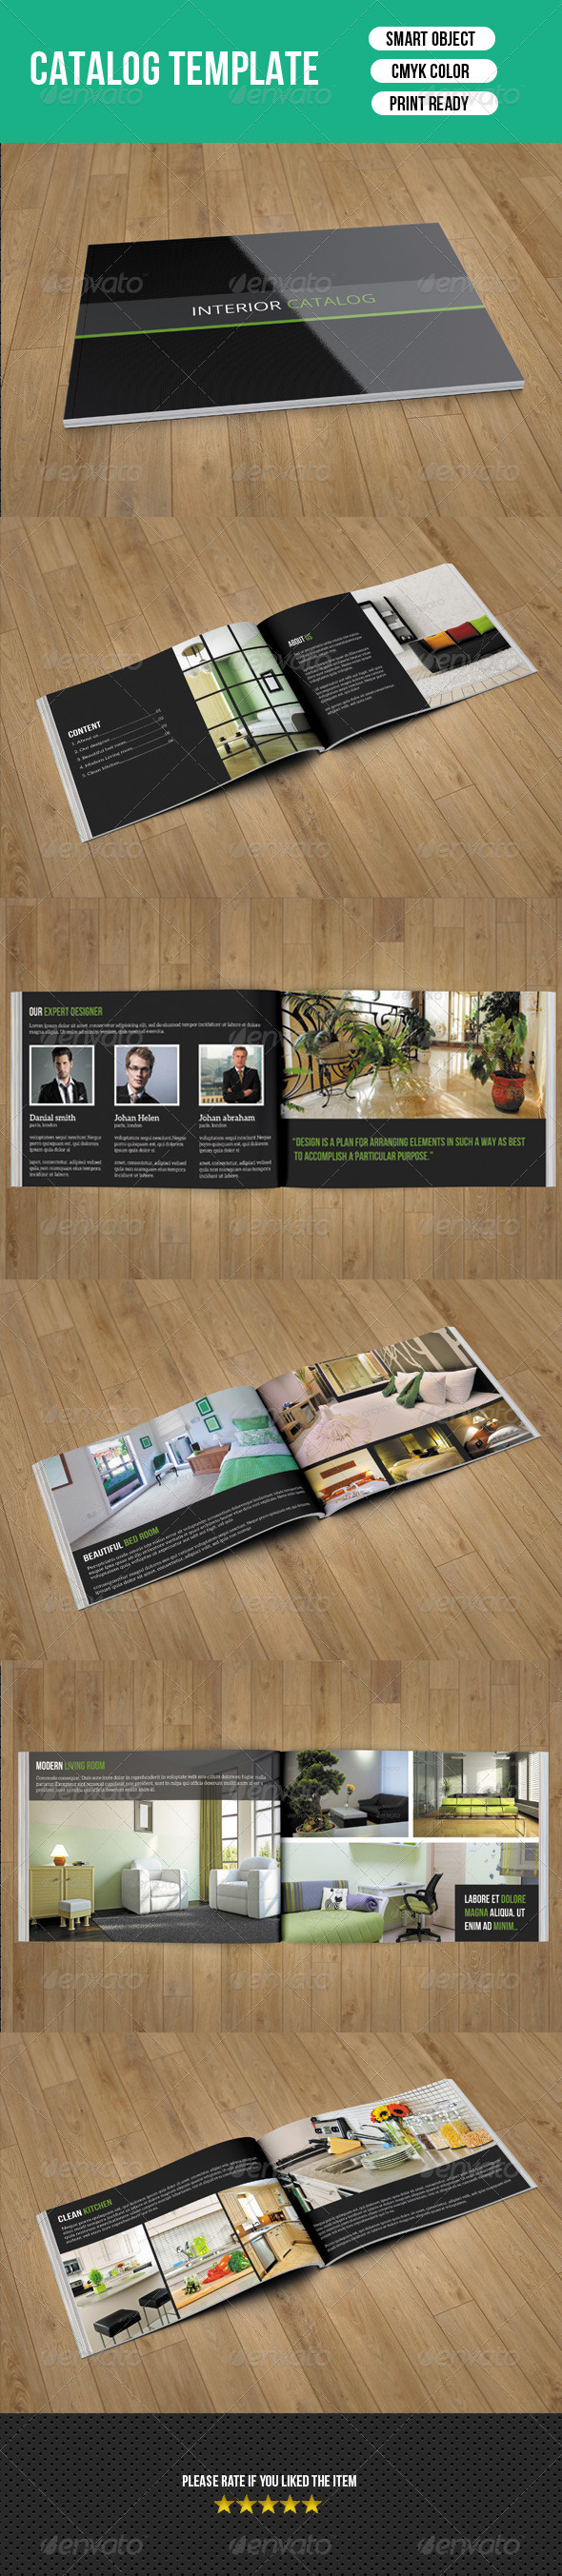 GraphicRiver Interior Catalog-V07 7870431